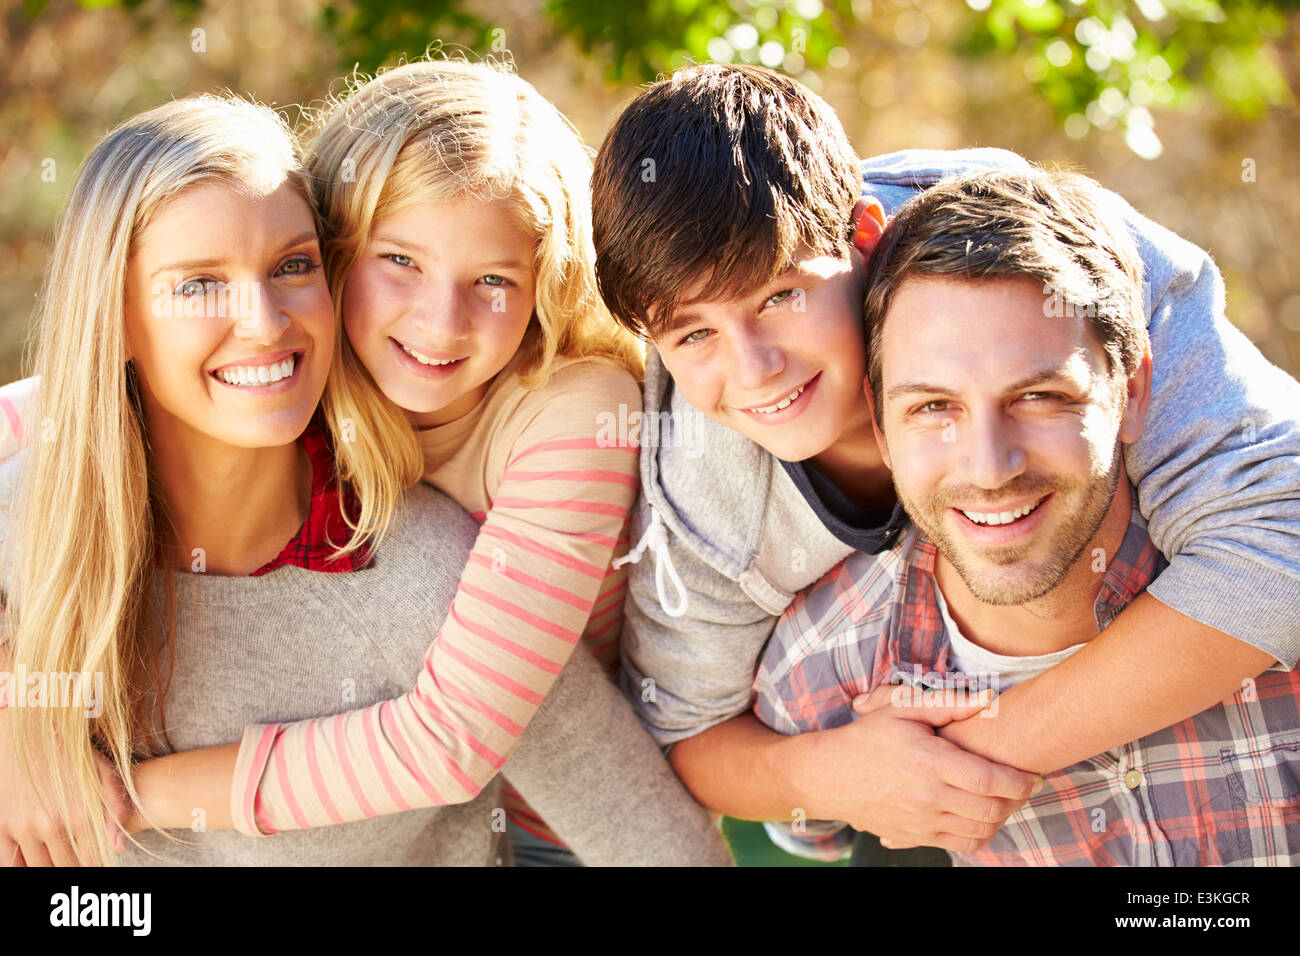 Portrait of Hispanic Family in Countryside Photo Stock